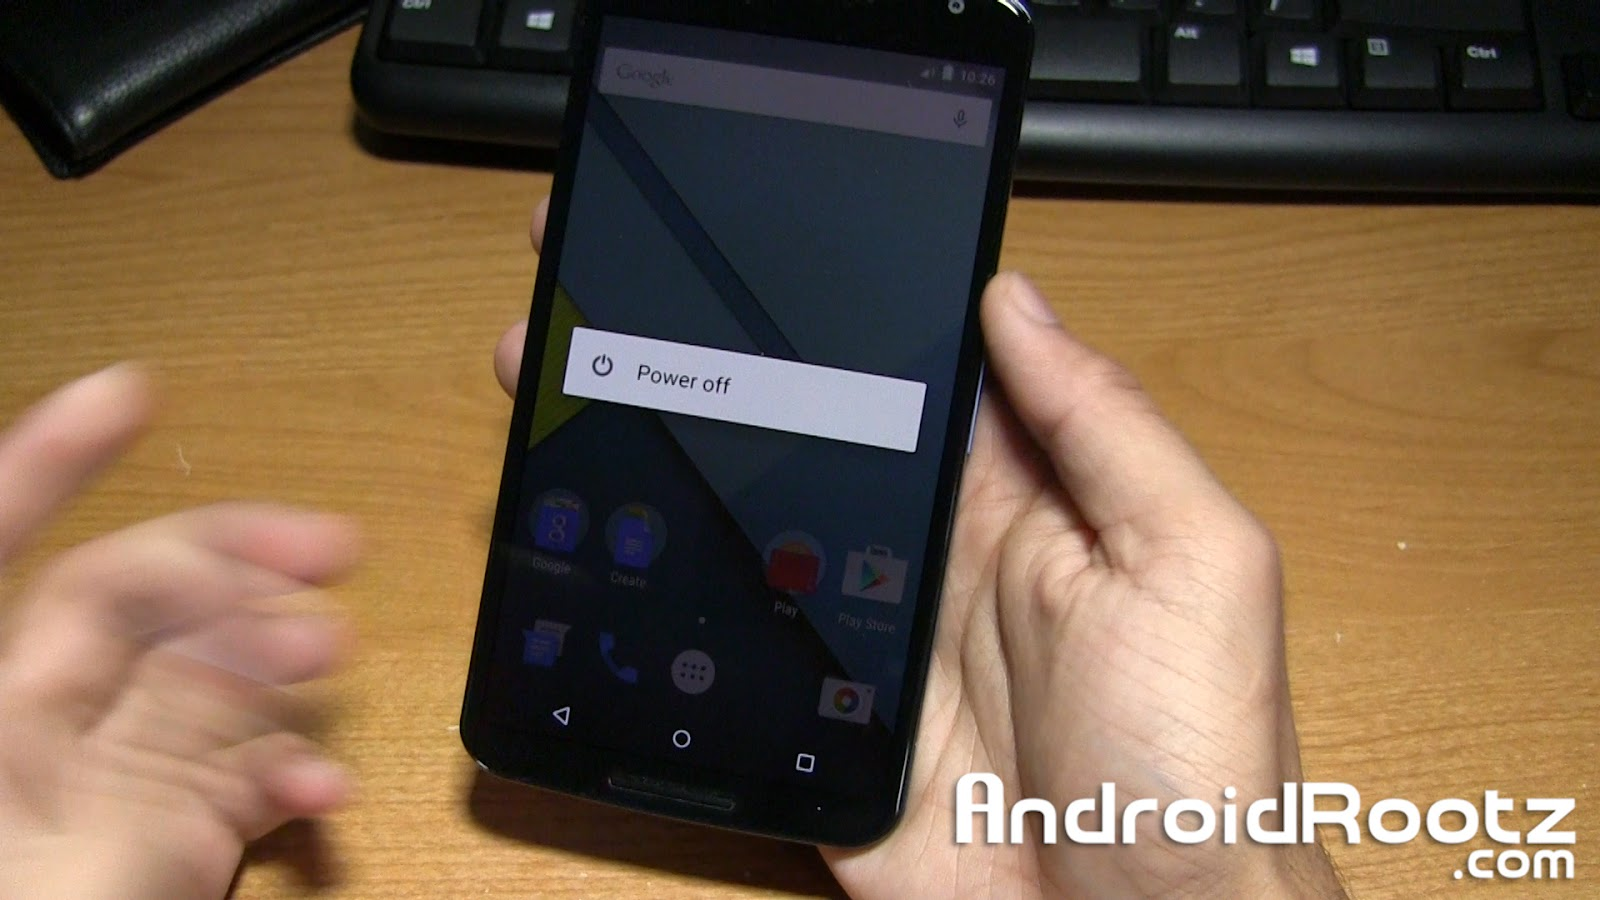 how to start nexus 5 in safe mode